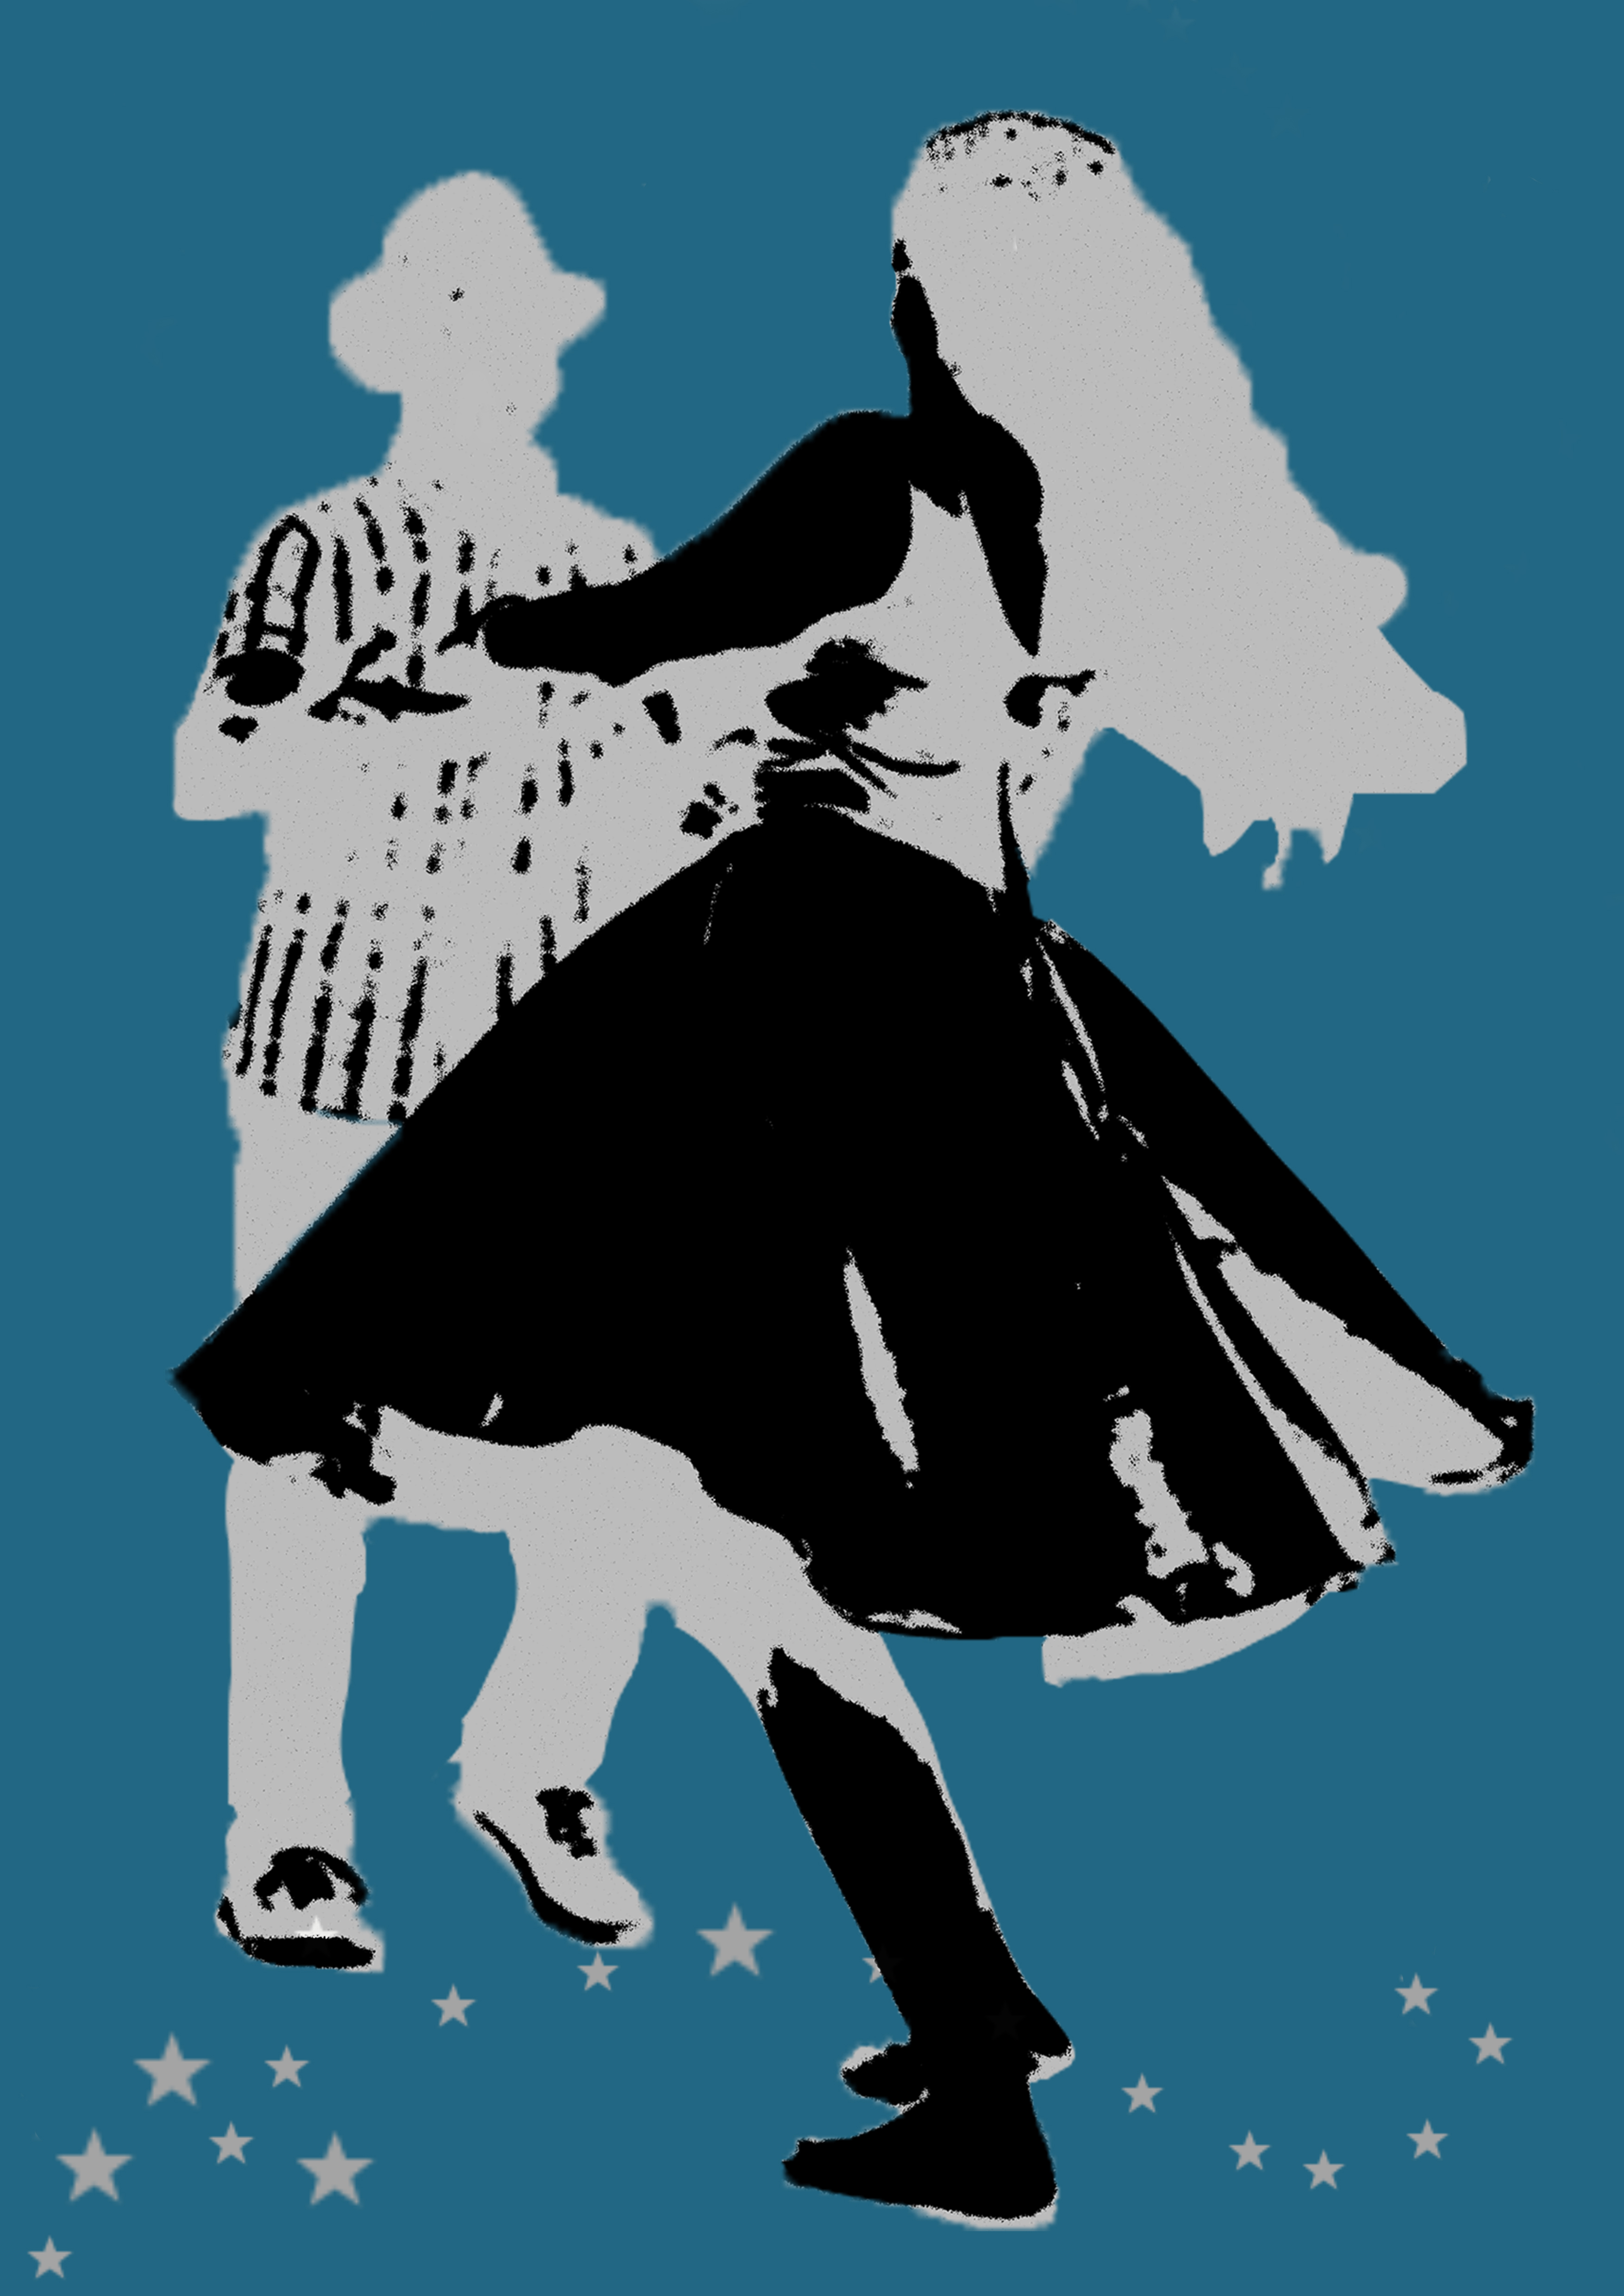 STAT1: Intro to Swing Dancing - The Lindy Hop